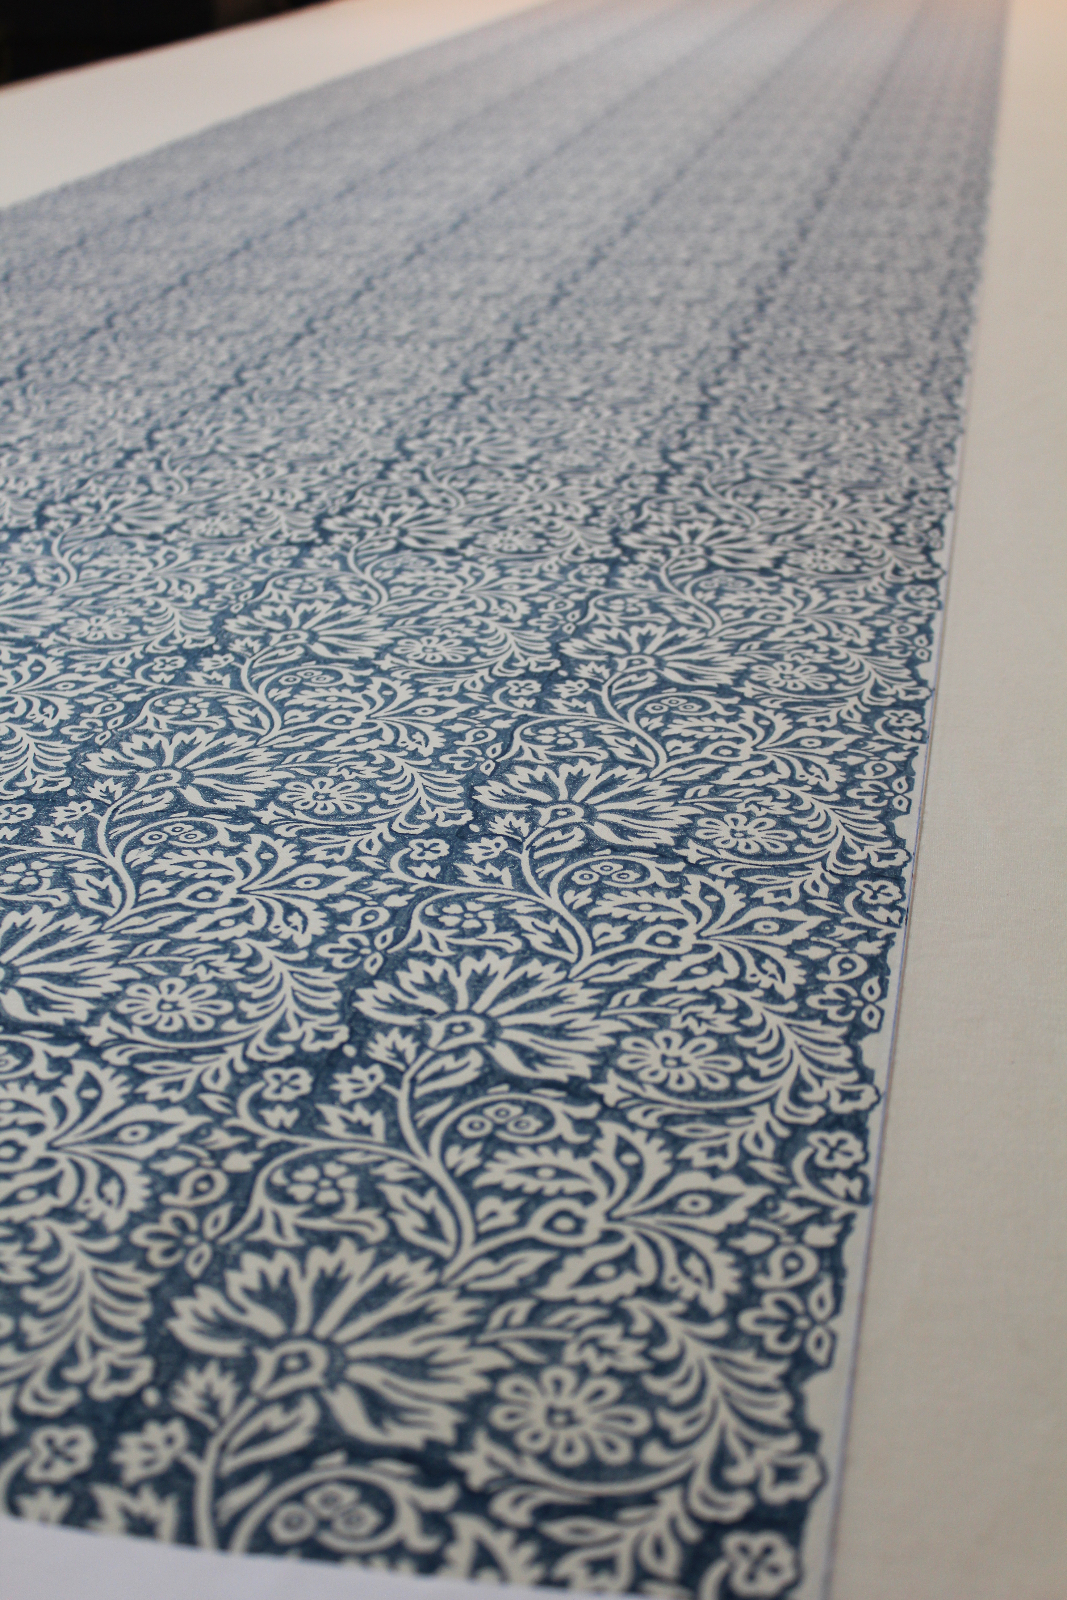 Flora-Indigo-from-the-Artisan-Collection-by-GP-J-Baker-wallpaper-wp5805712